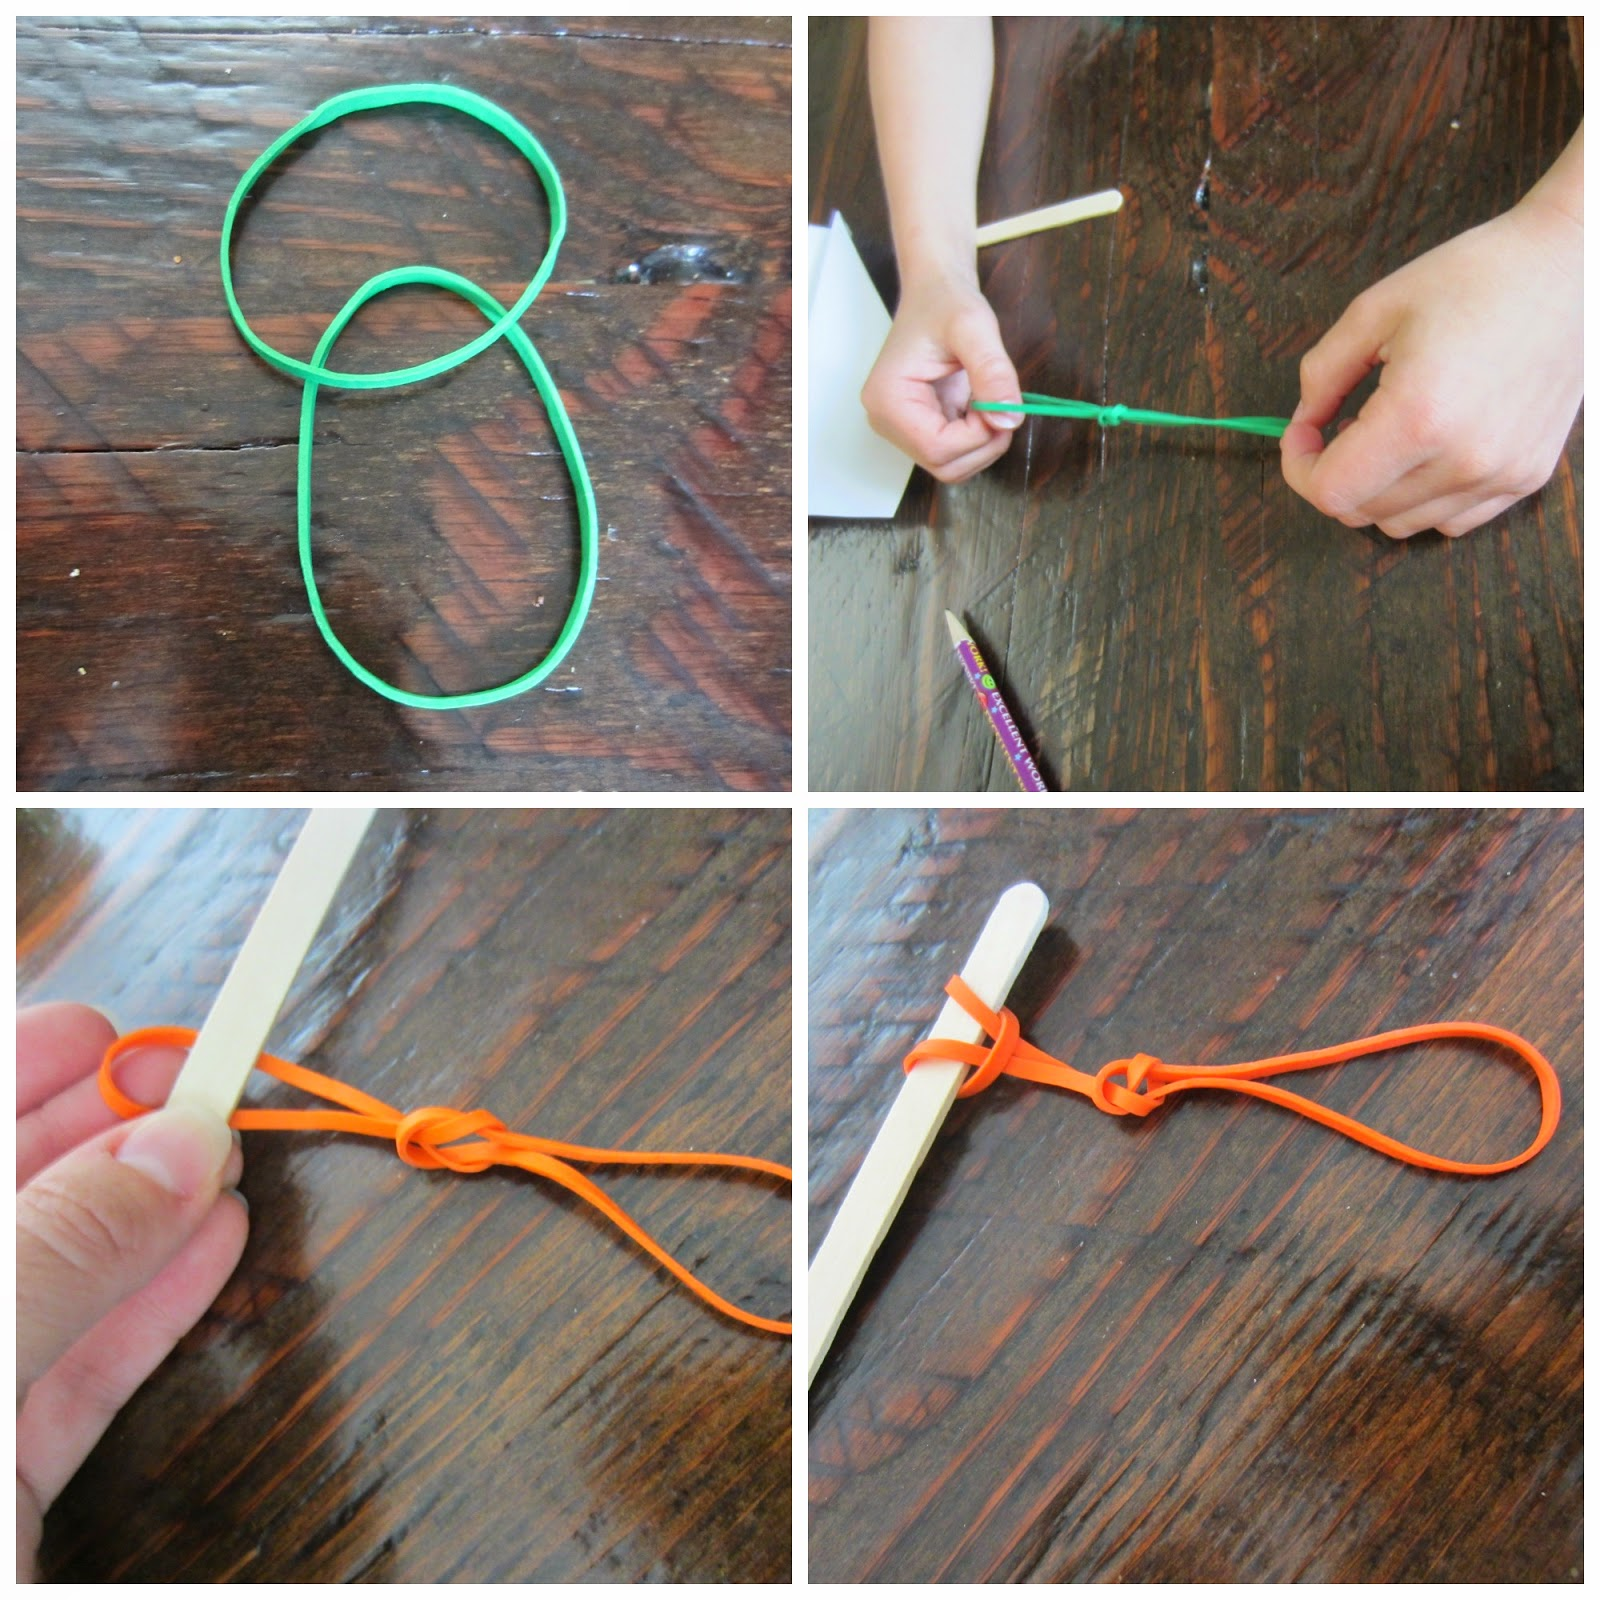 relentlessly fun deceptively educational how to make a paper